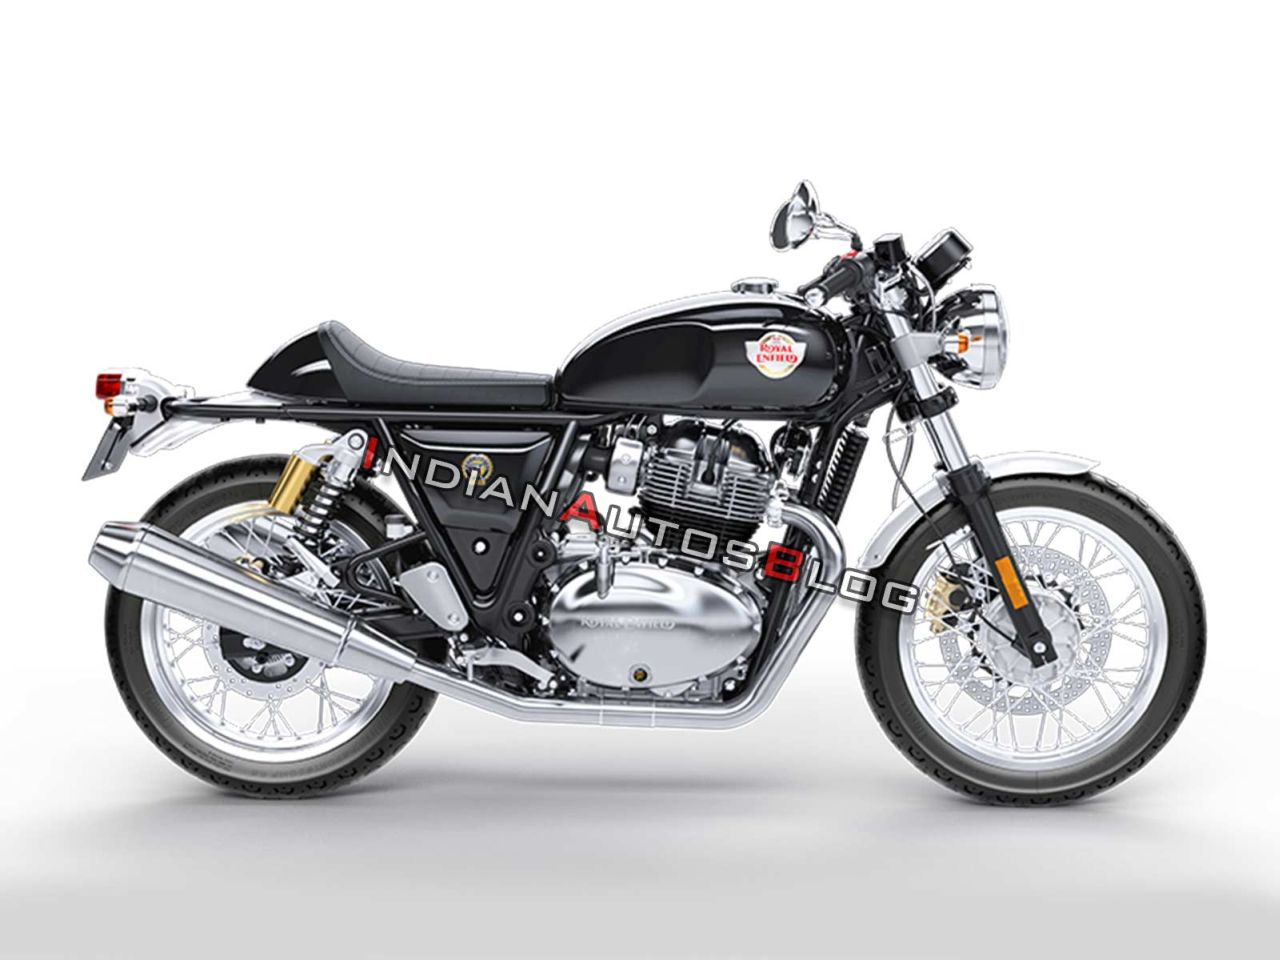 Fuel Tank Swap On The Royal Enfield Continental Gt 650 Yea Or Nay